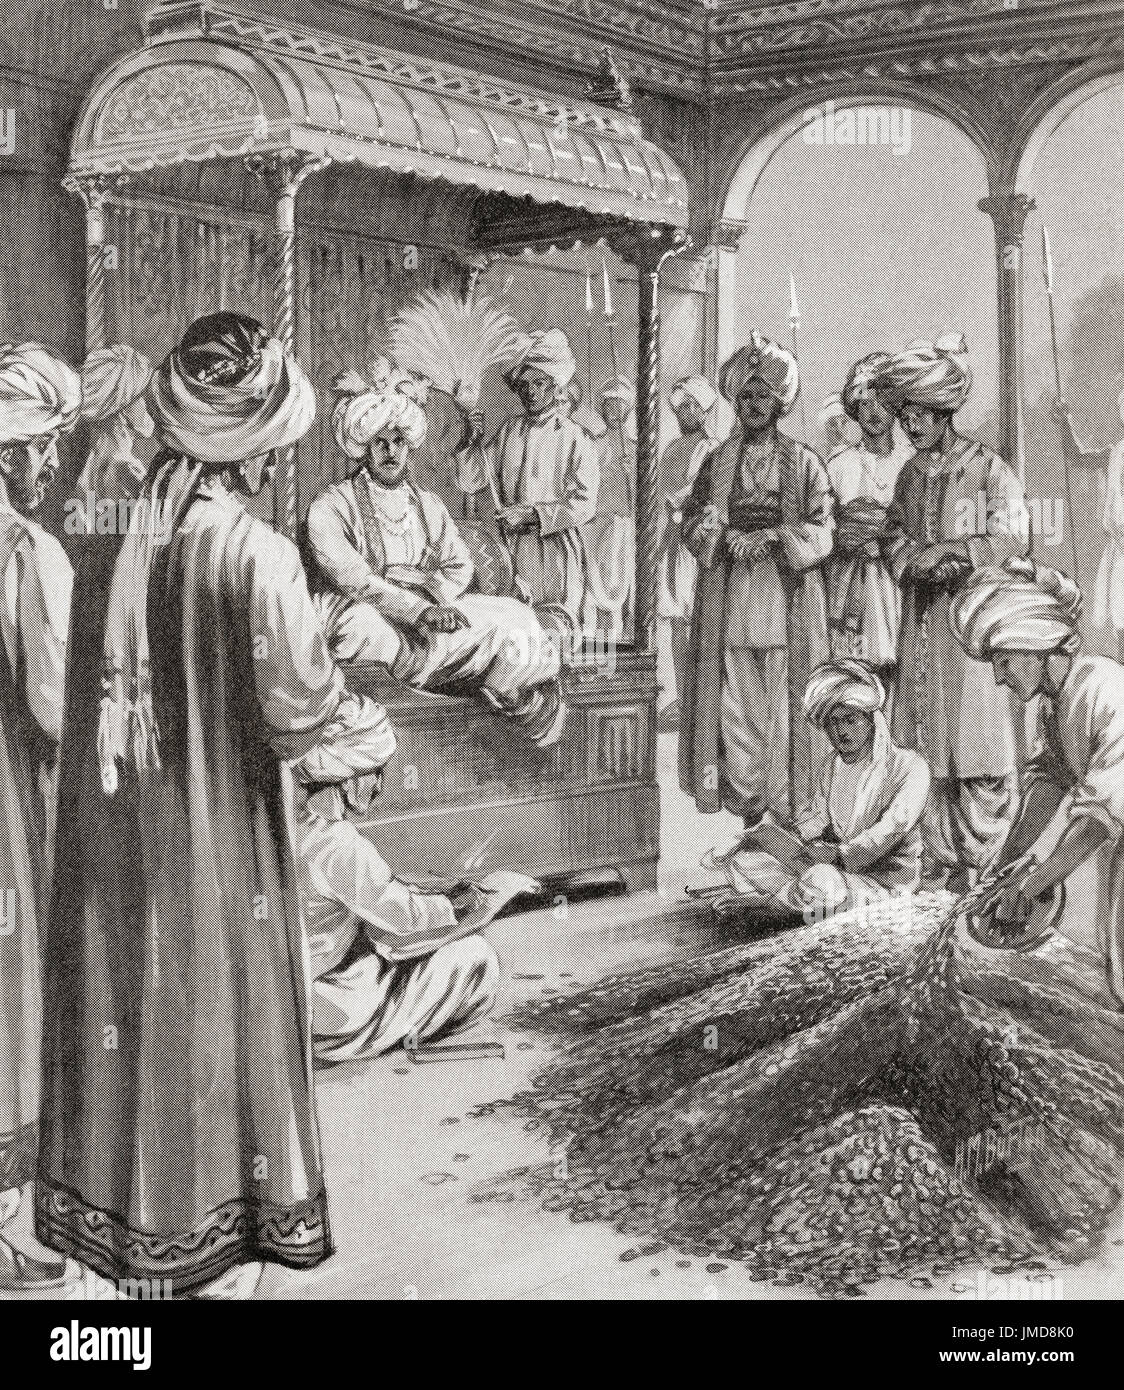 Muhammad bin Tughluq, aka Prince Fakhr Malik, Jauna Khan, Ulugh Khan; died 20 March 1351.  Sultan of Delhi of Turkic descent.   Muhammad bin Tughluq issuing token currency; that is coins of brass and copper were minted whose value was equal to that of gold and silver coins, 1330 AD. From Hutchinson's History of the Nations, published 1915. - Stock Image